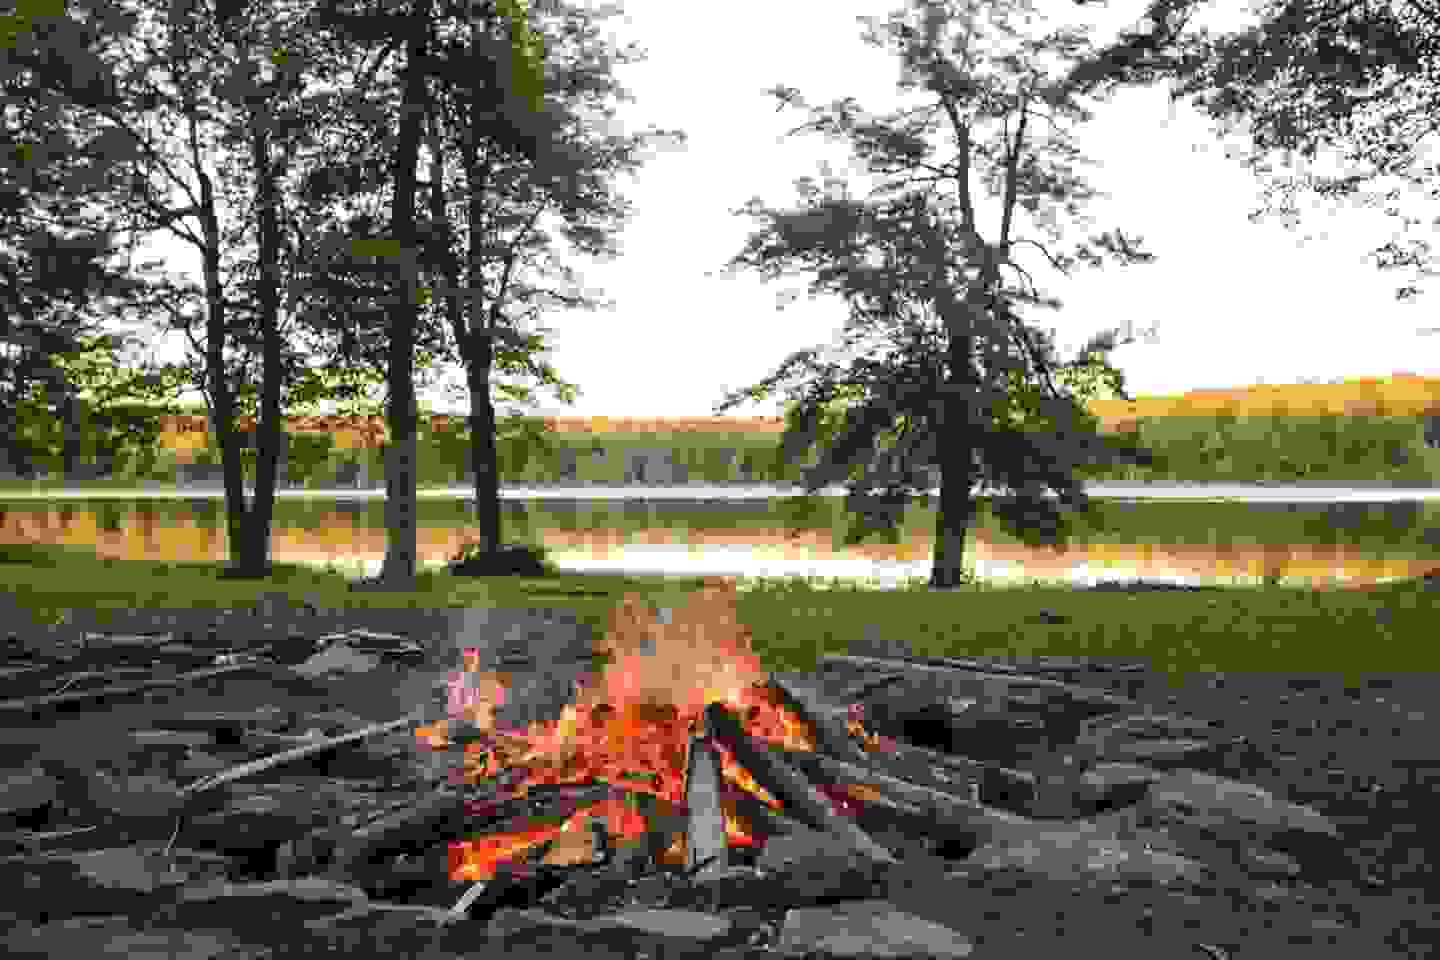 Glowing campfire by the lake